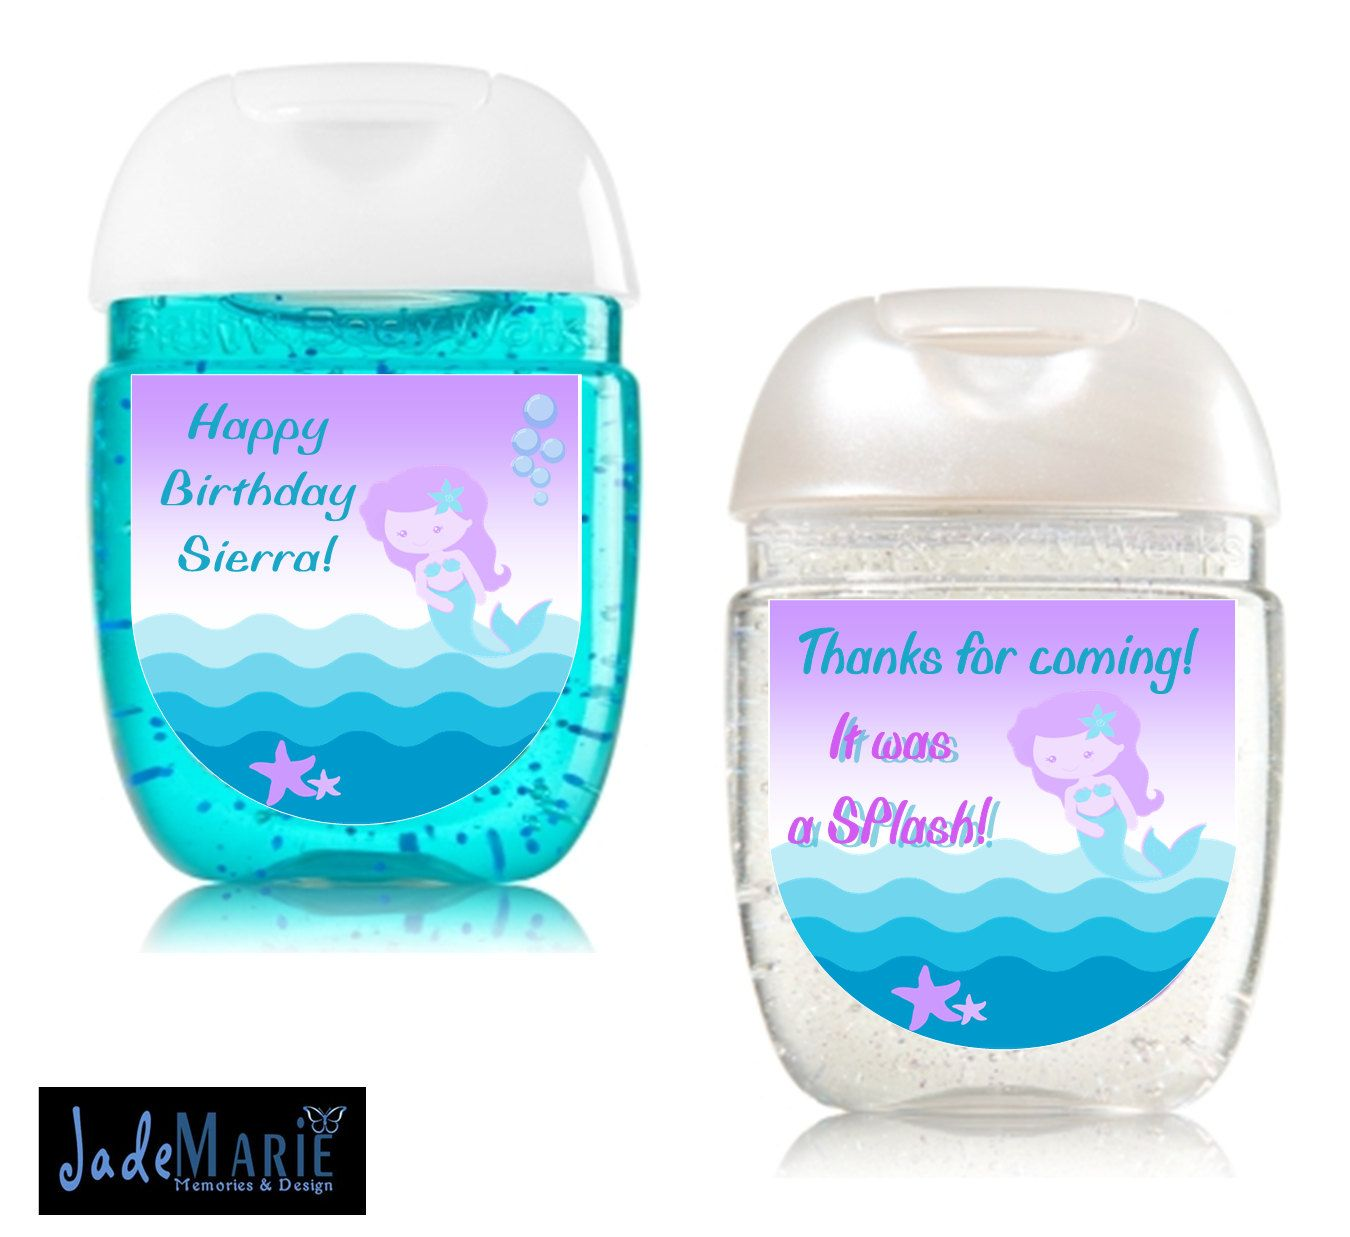 59ml Hand Sanitizer Promotional High Quality And Low Price Can